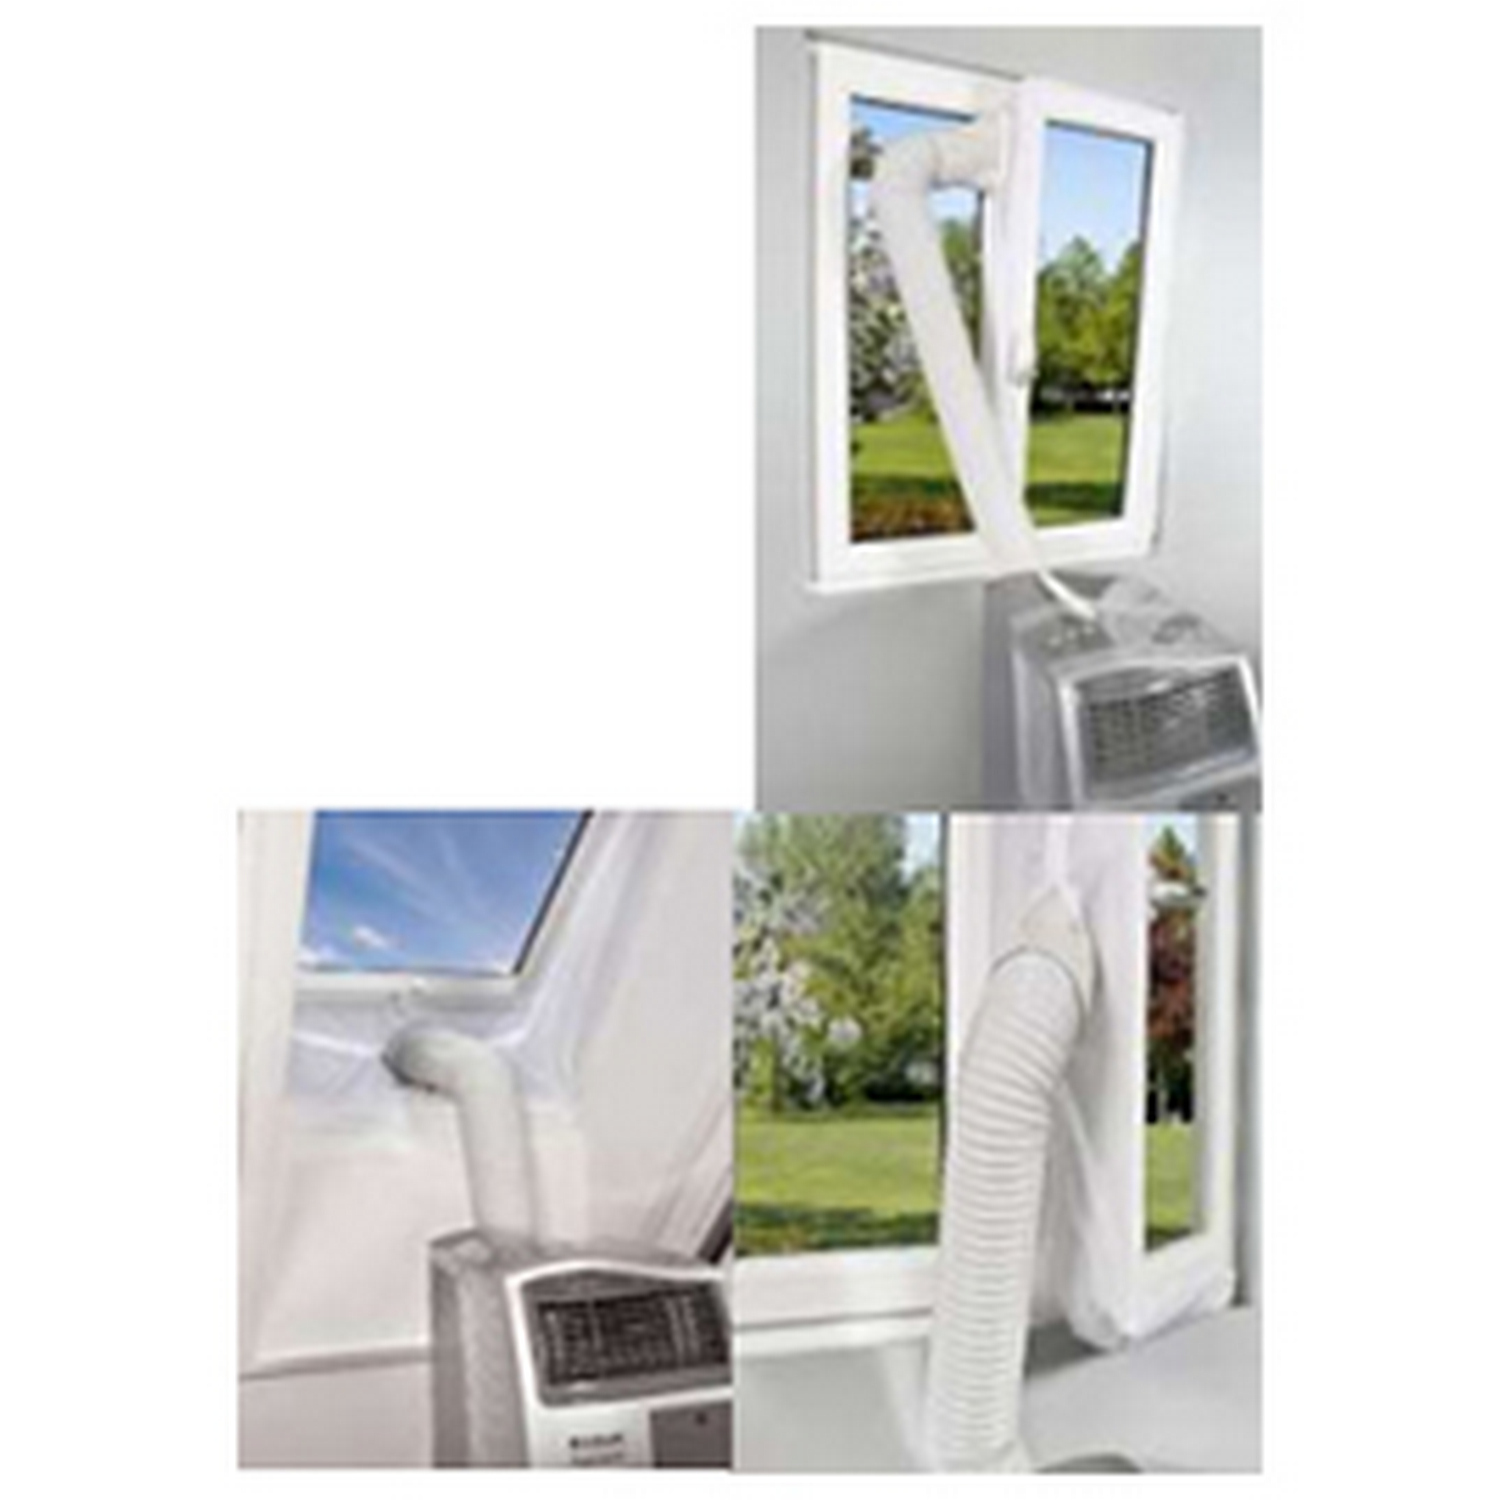 SHE SHE01AIRSTPFE HOT AIR STOP FENSTER